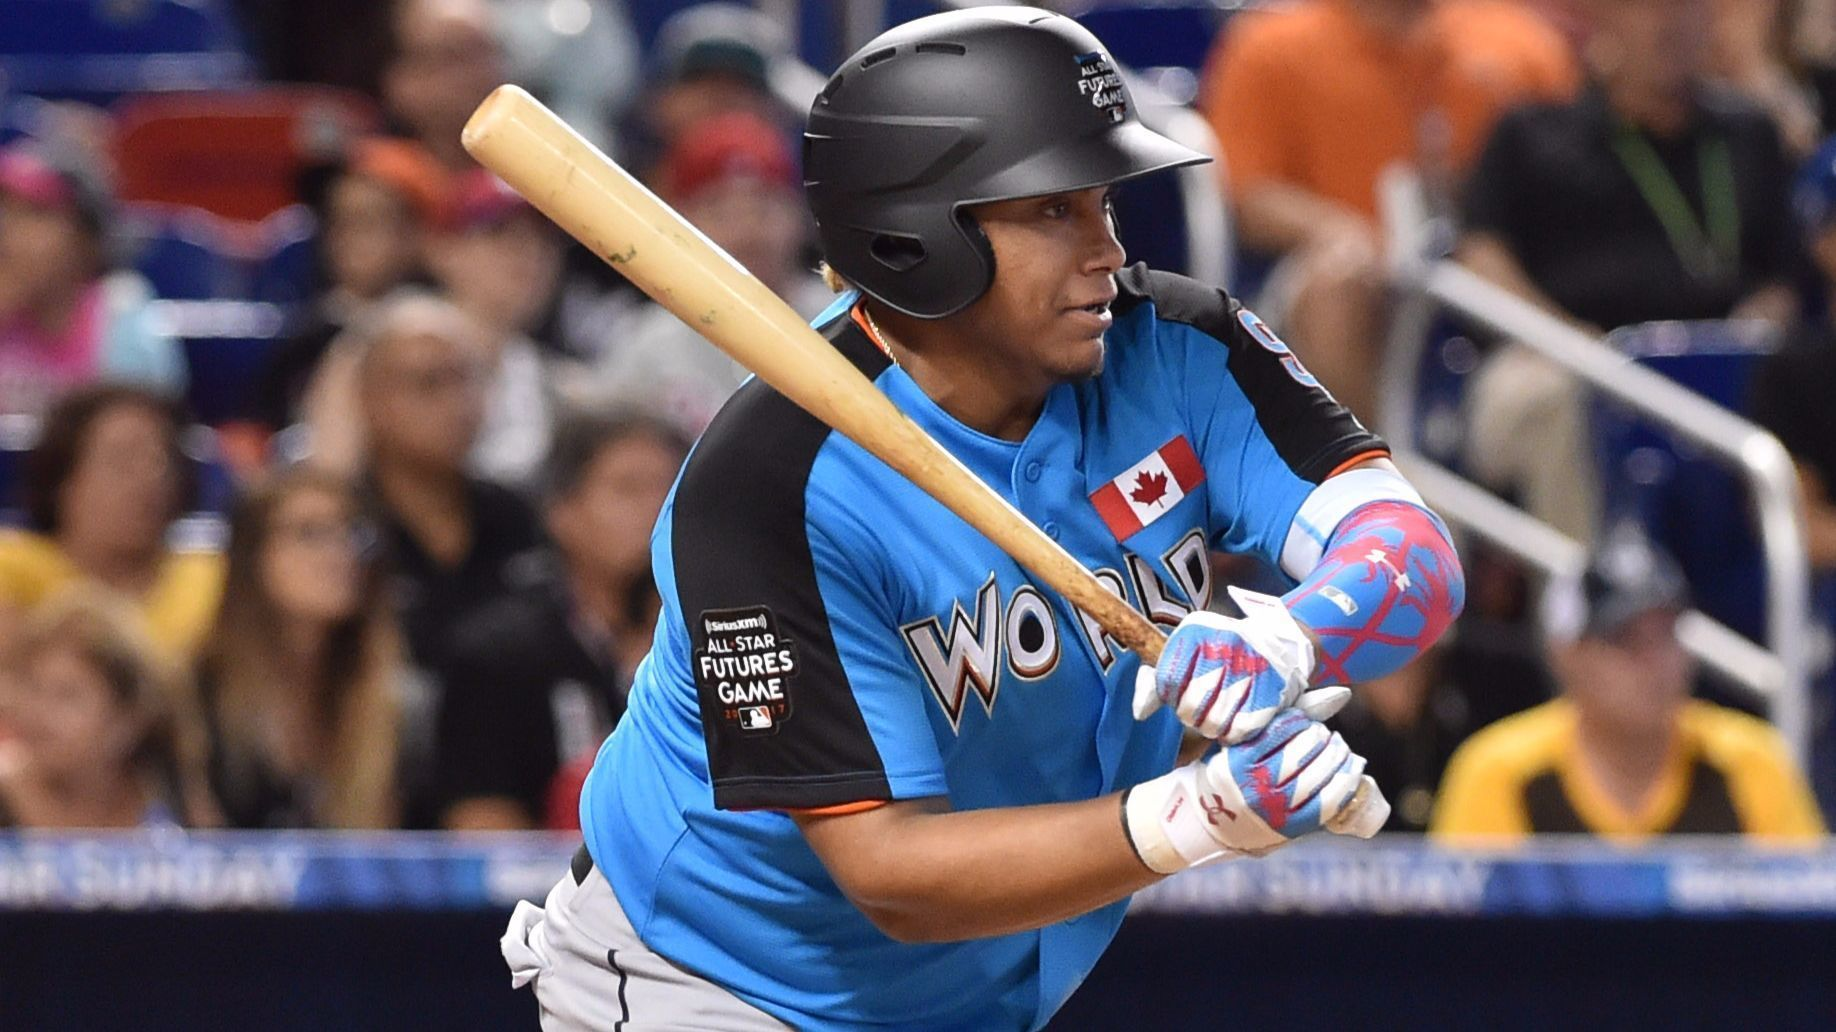 Josh Naylor Leads Missions To Win The San Diego Union